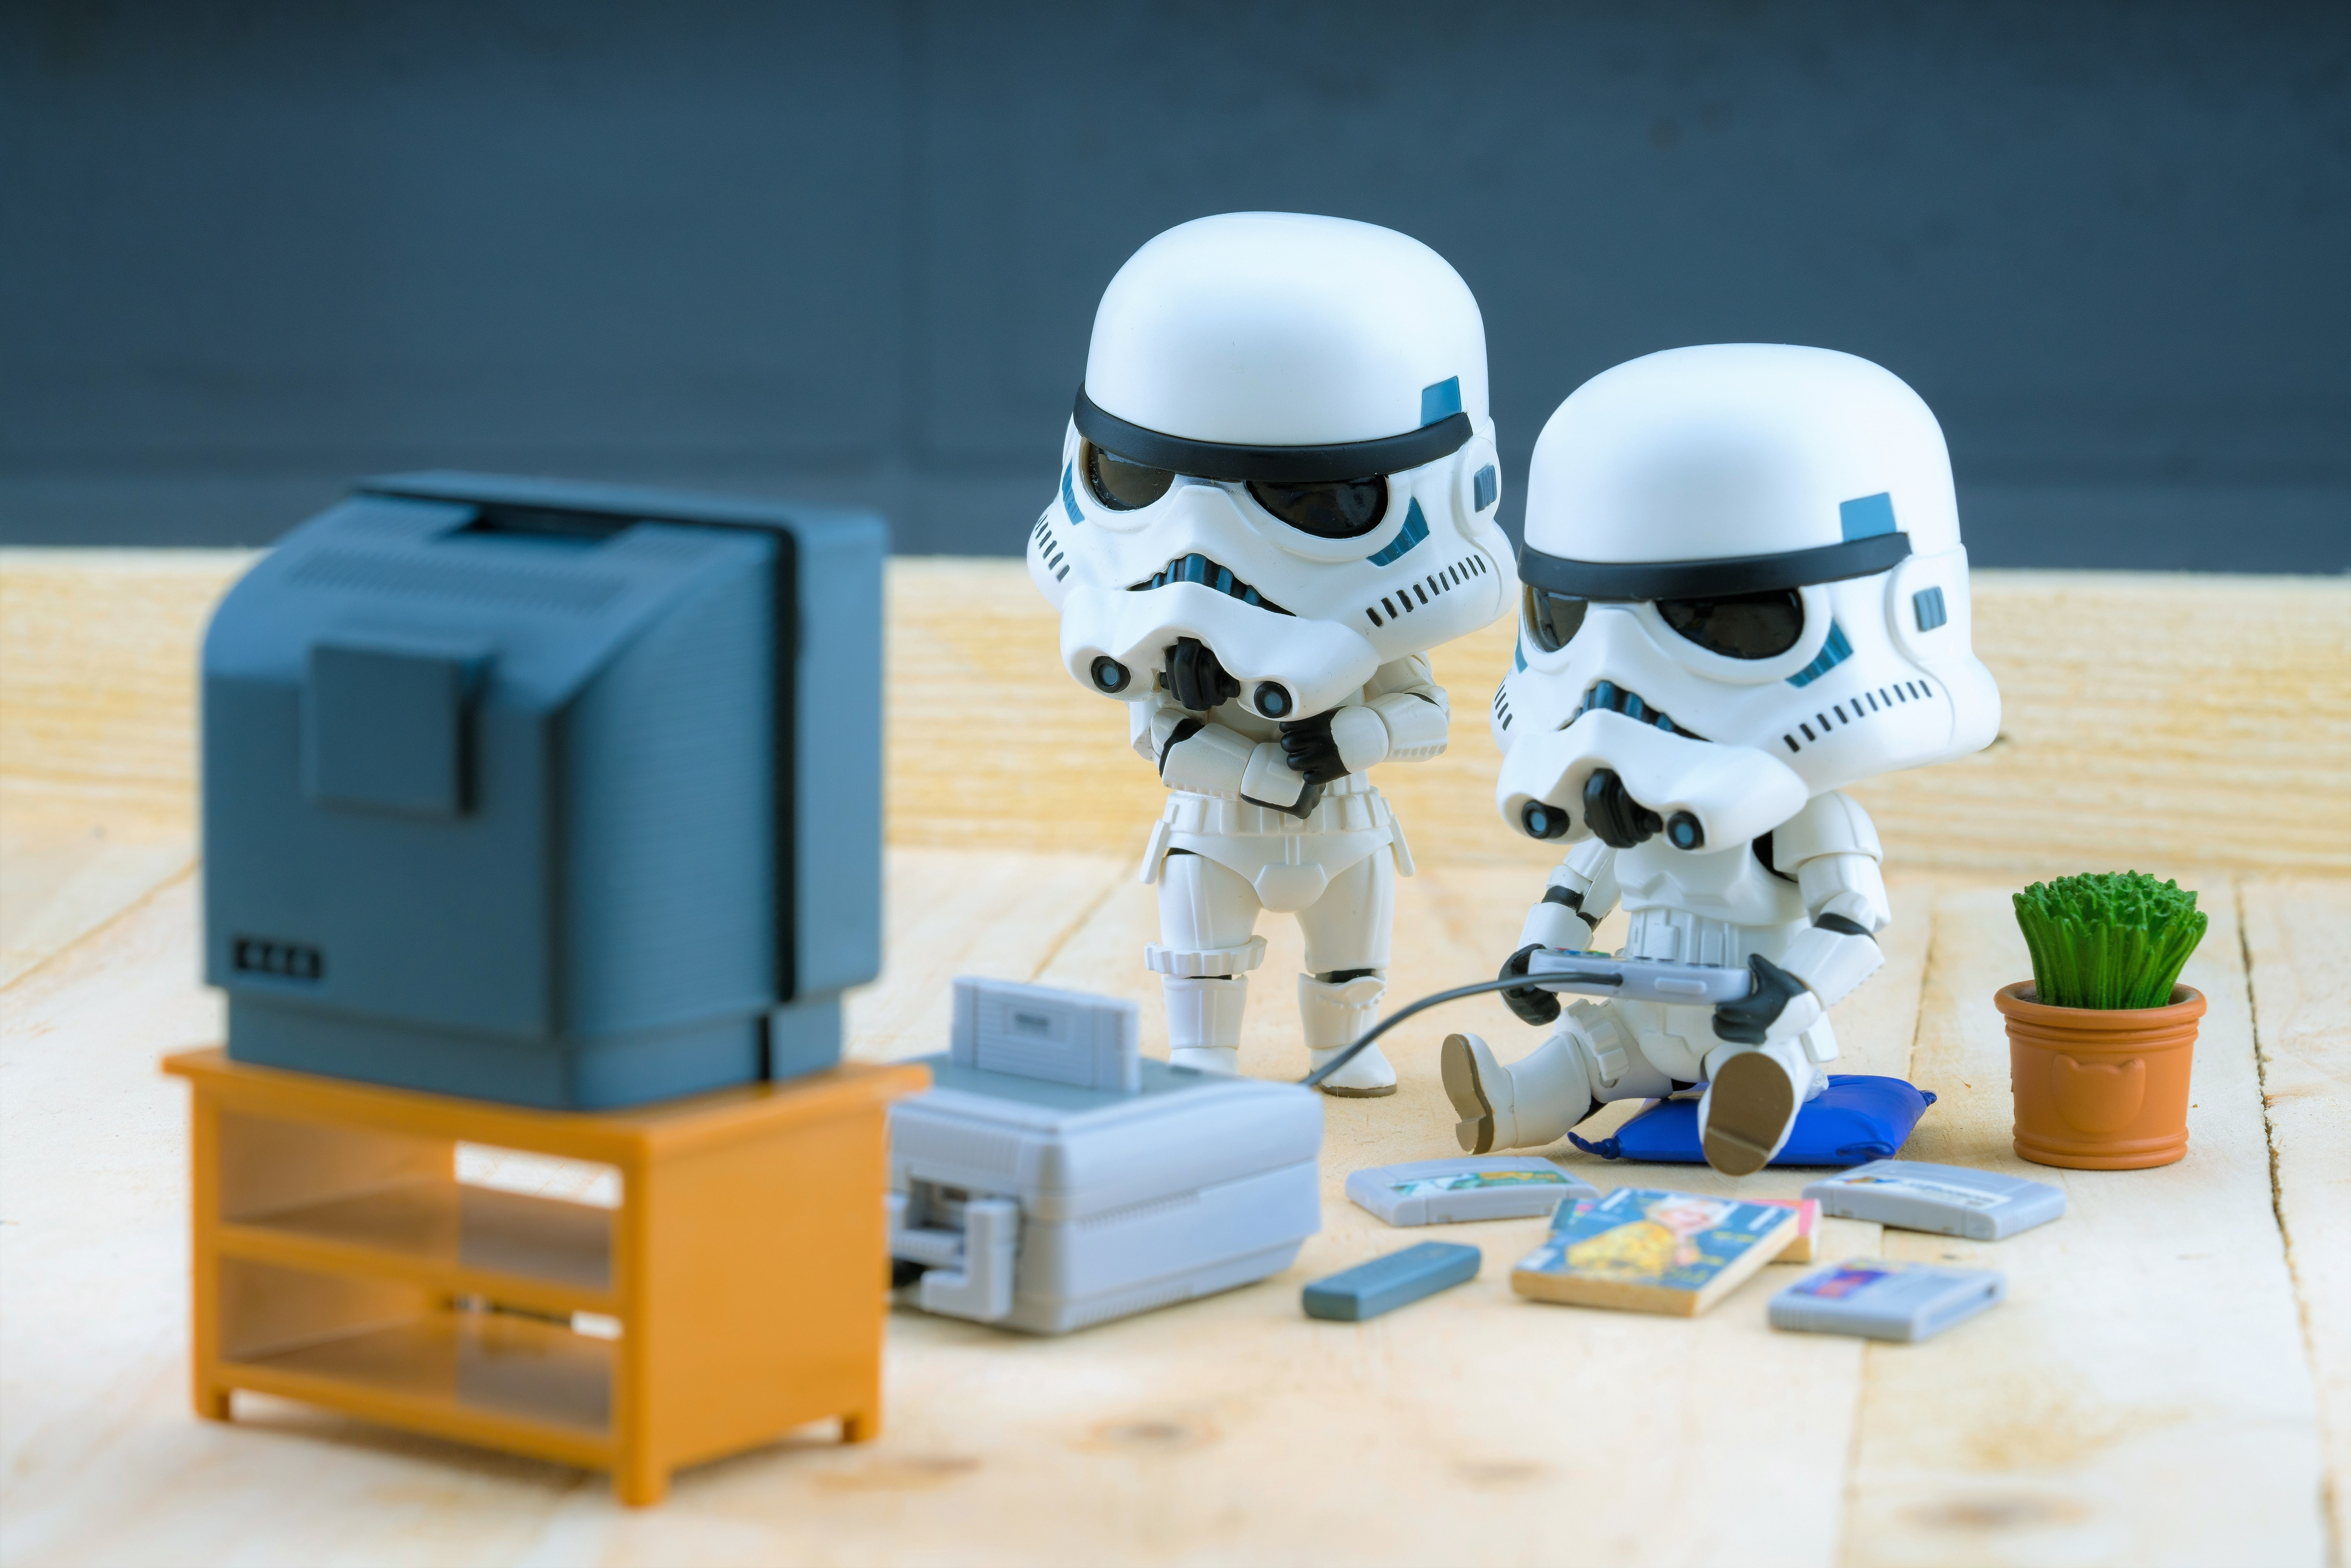 Stormtroopers figure model playing the game, The stormtroopers are soldiers in the Star Wars The Force Awakens